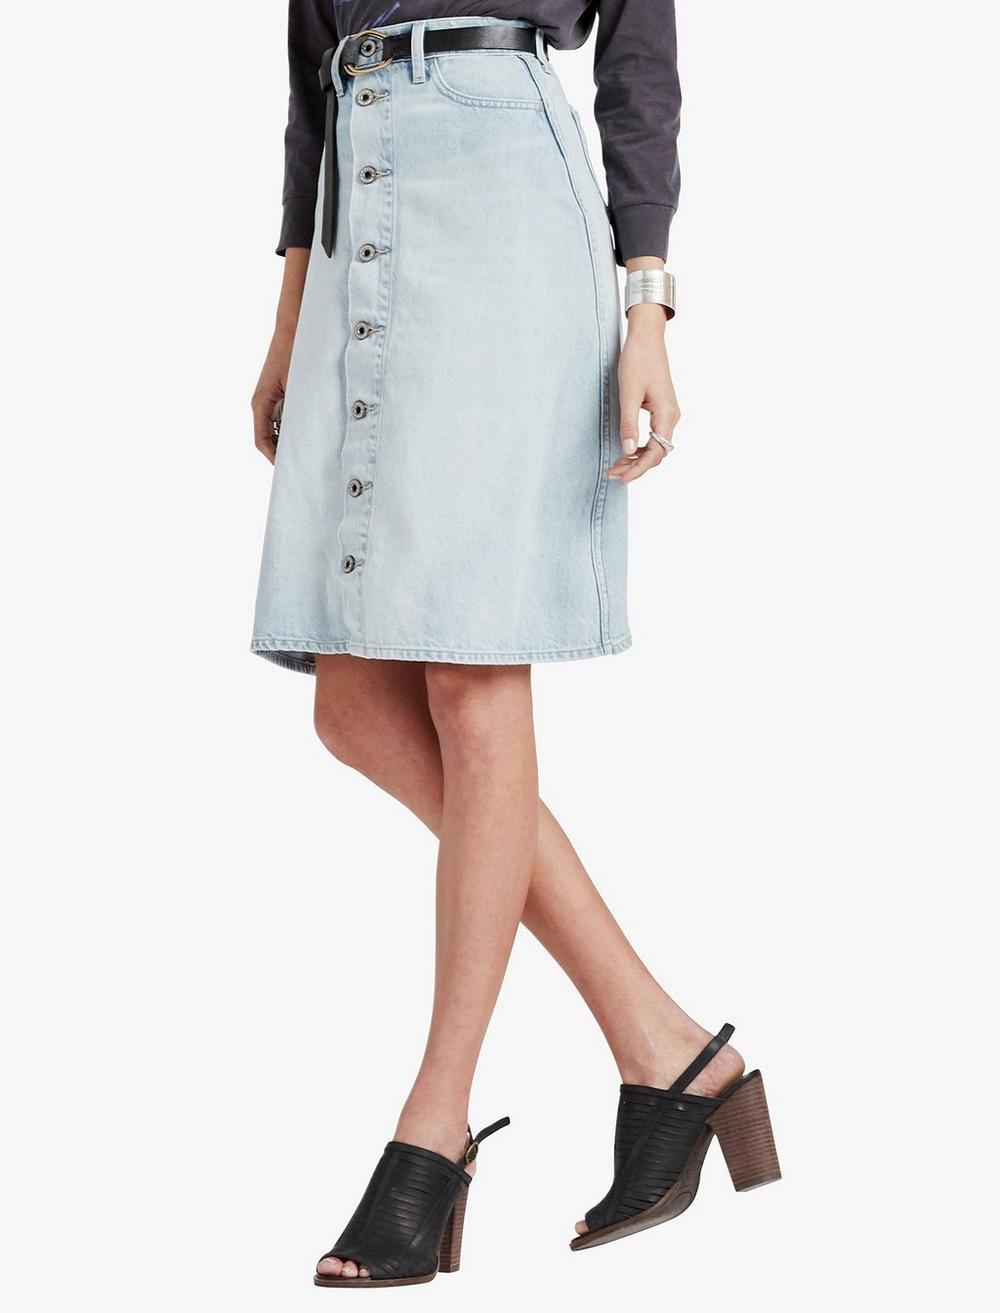 HIGH RISE BUTTON FRONT SKIRT, image 1